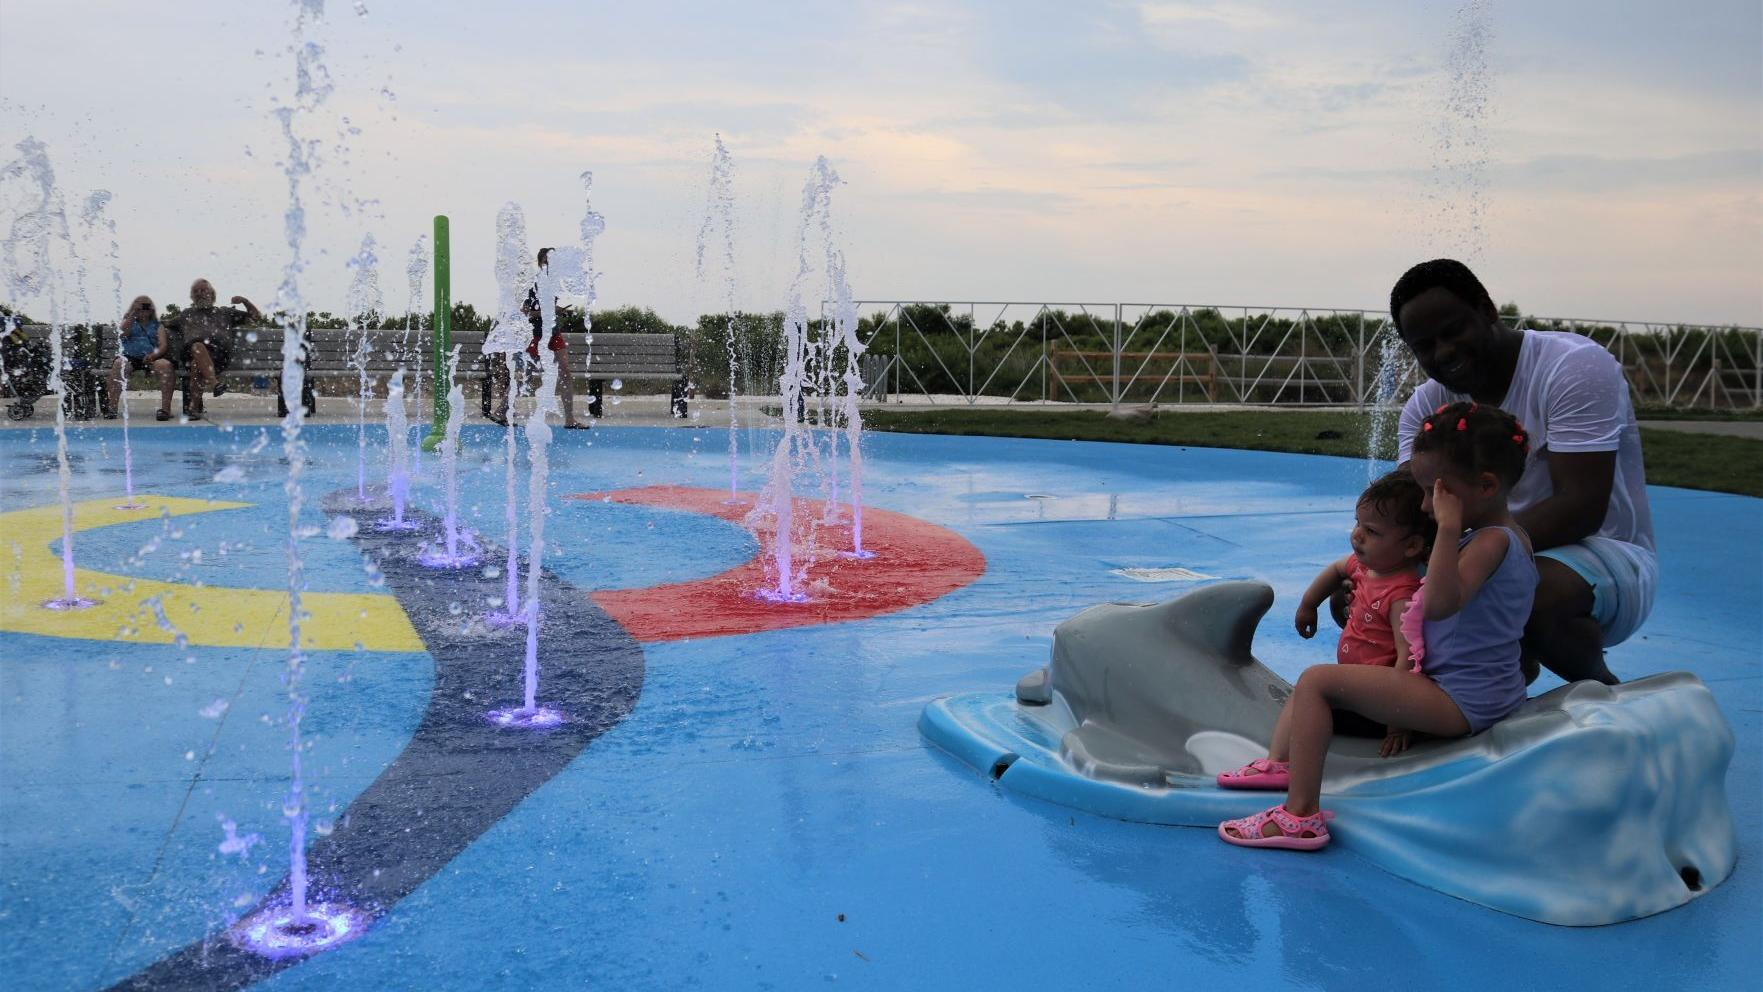 New fountain park in Wildwood Crest opens with little fanfare, but big splash